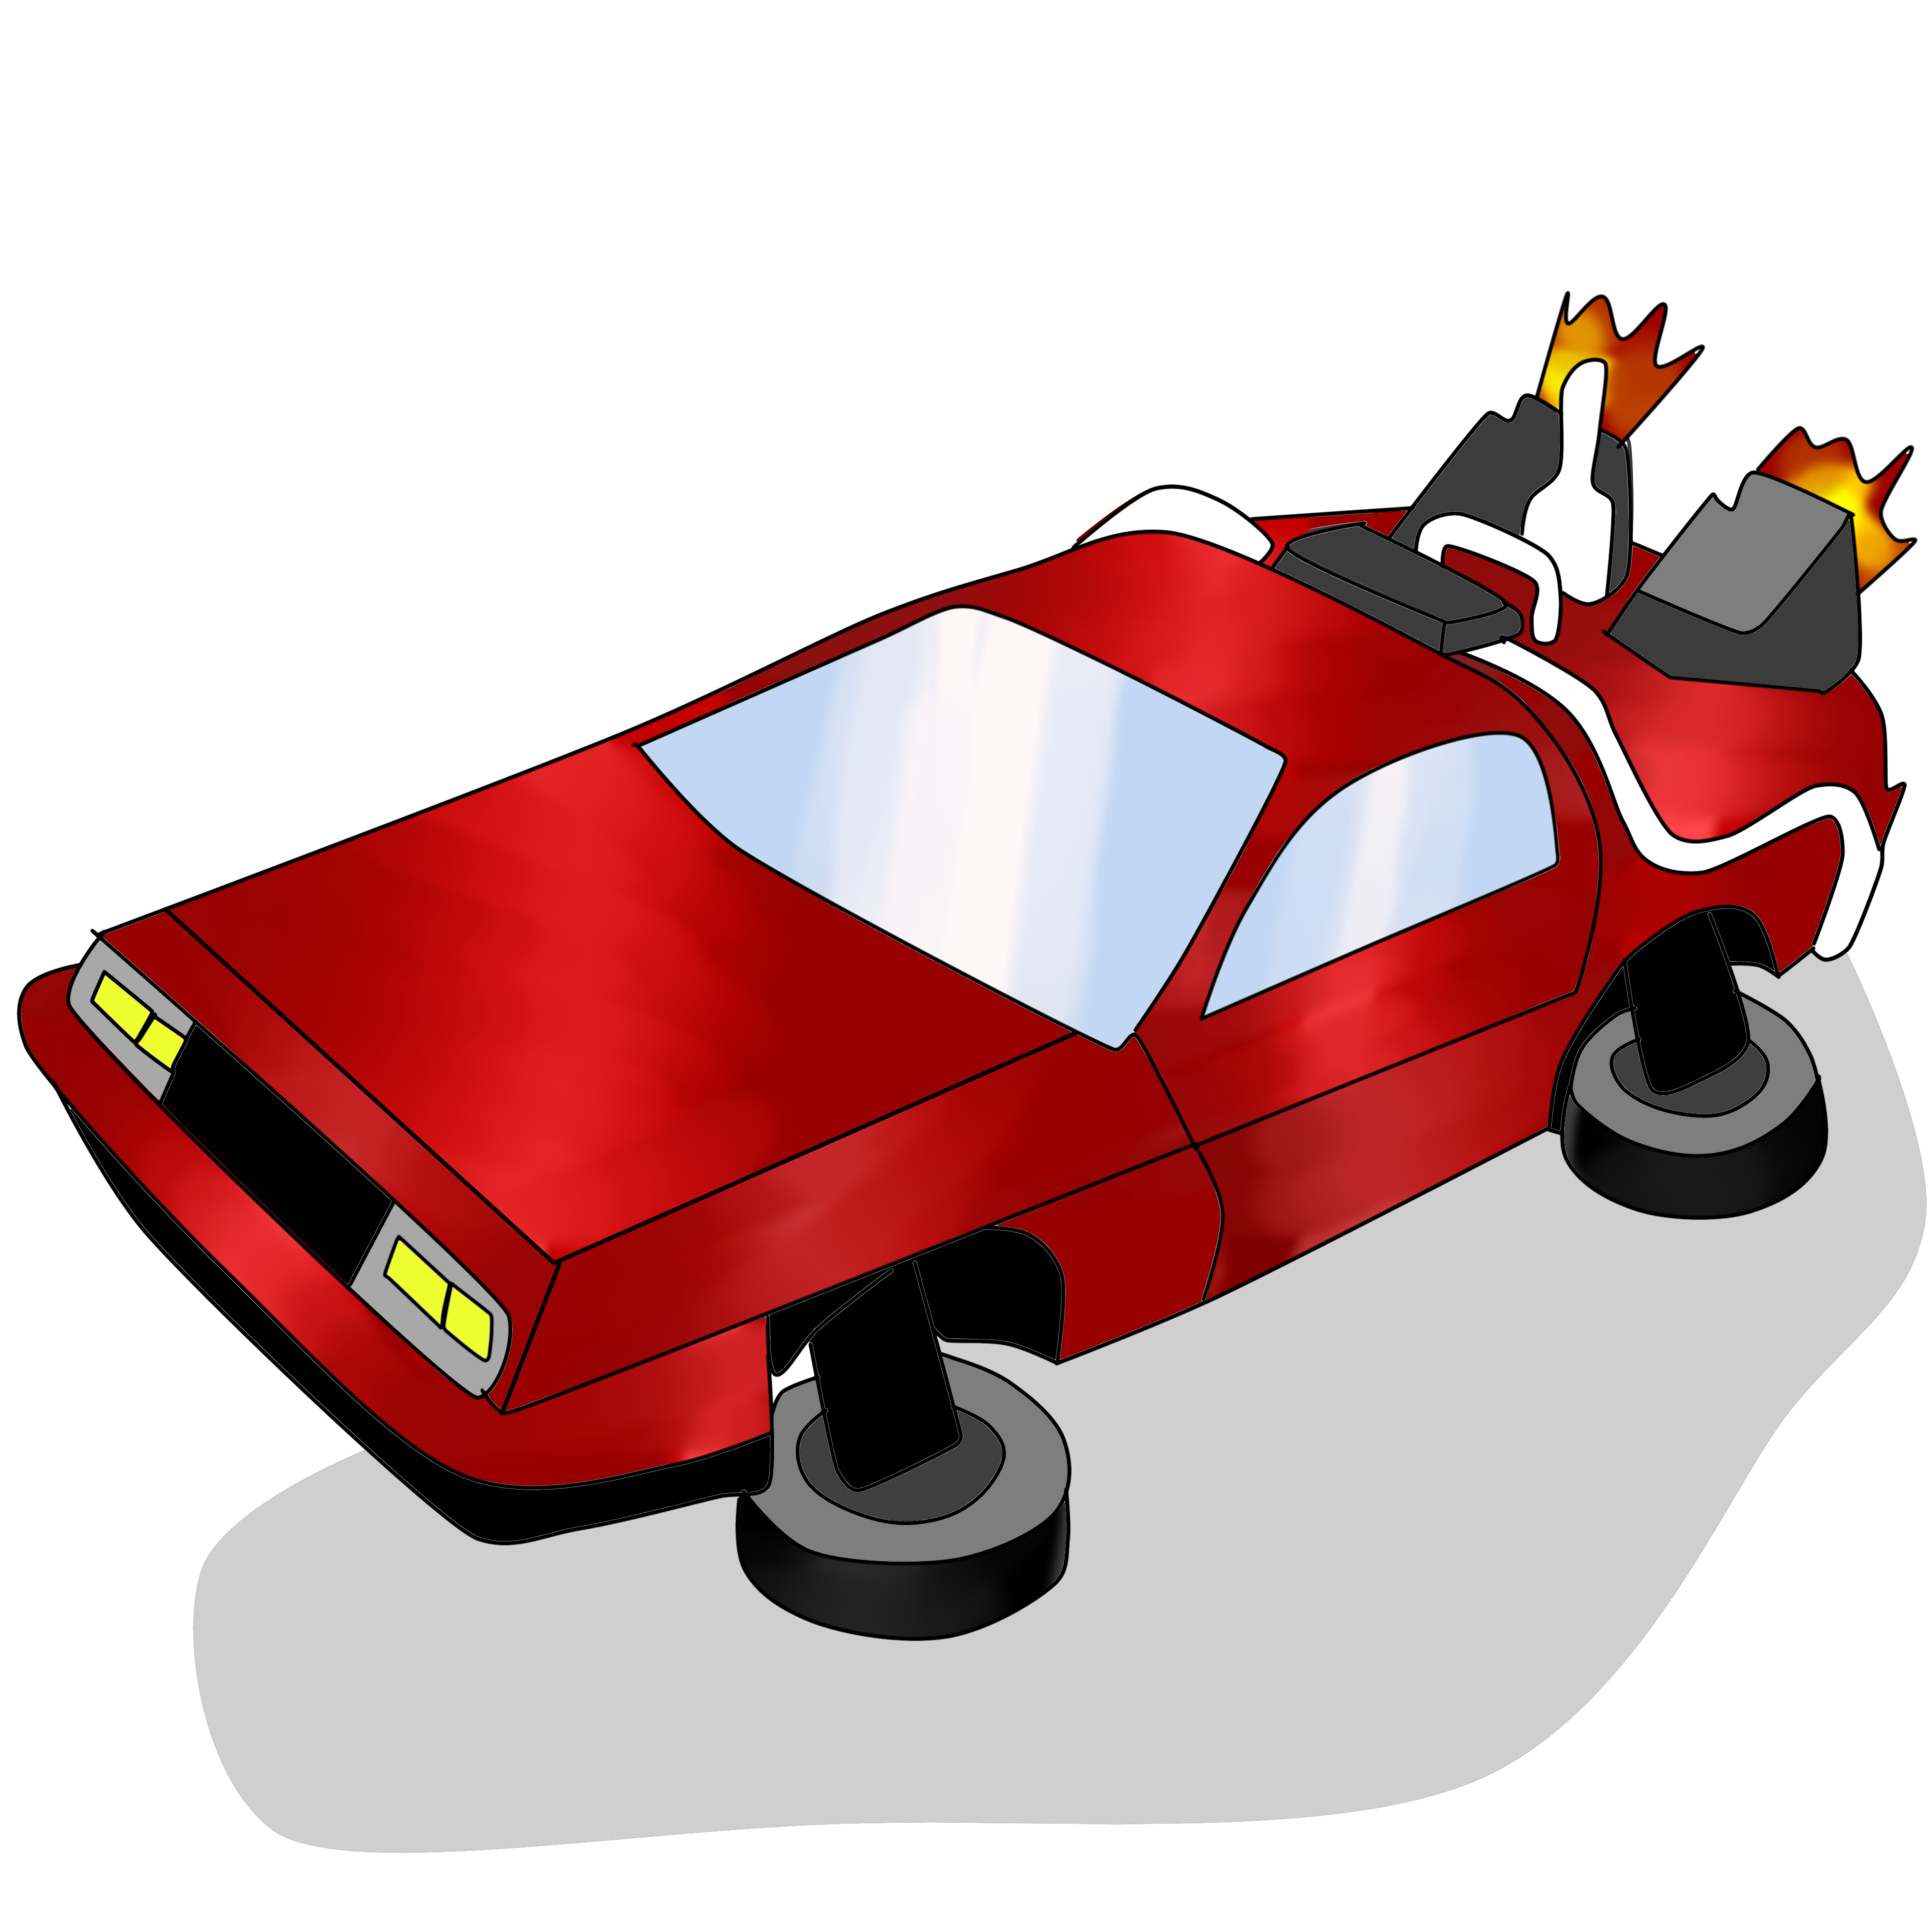 Flying car clipart svg library library Flashback to the Future – El Estoque svg library library